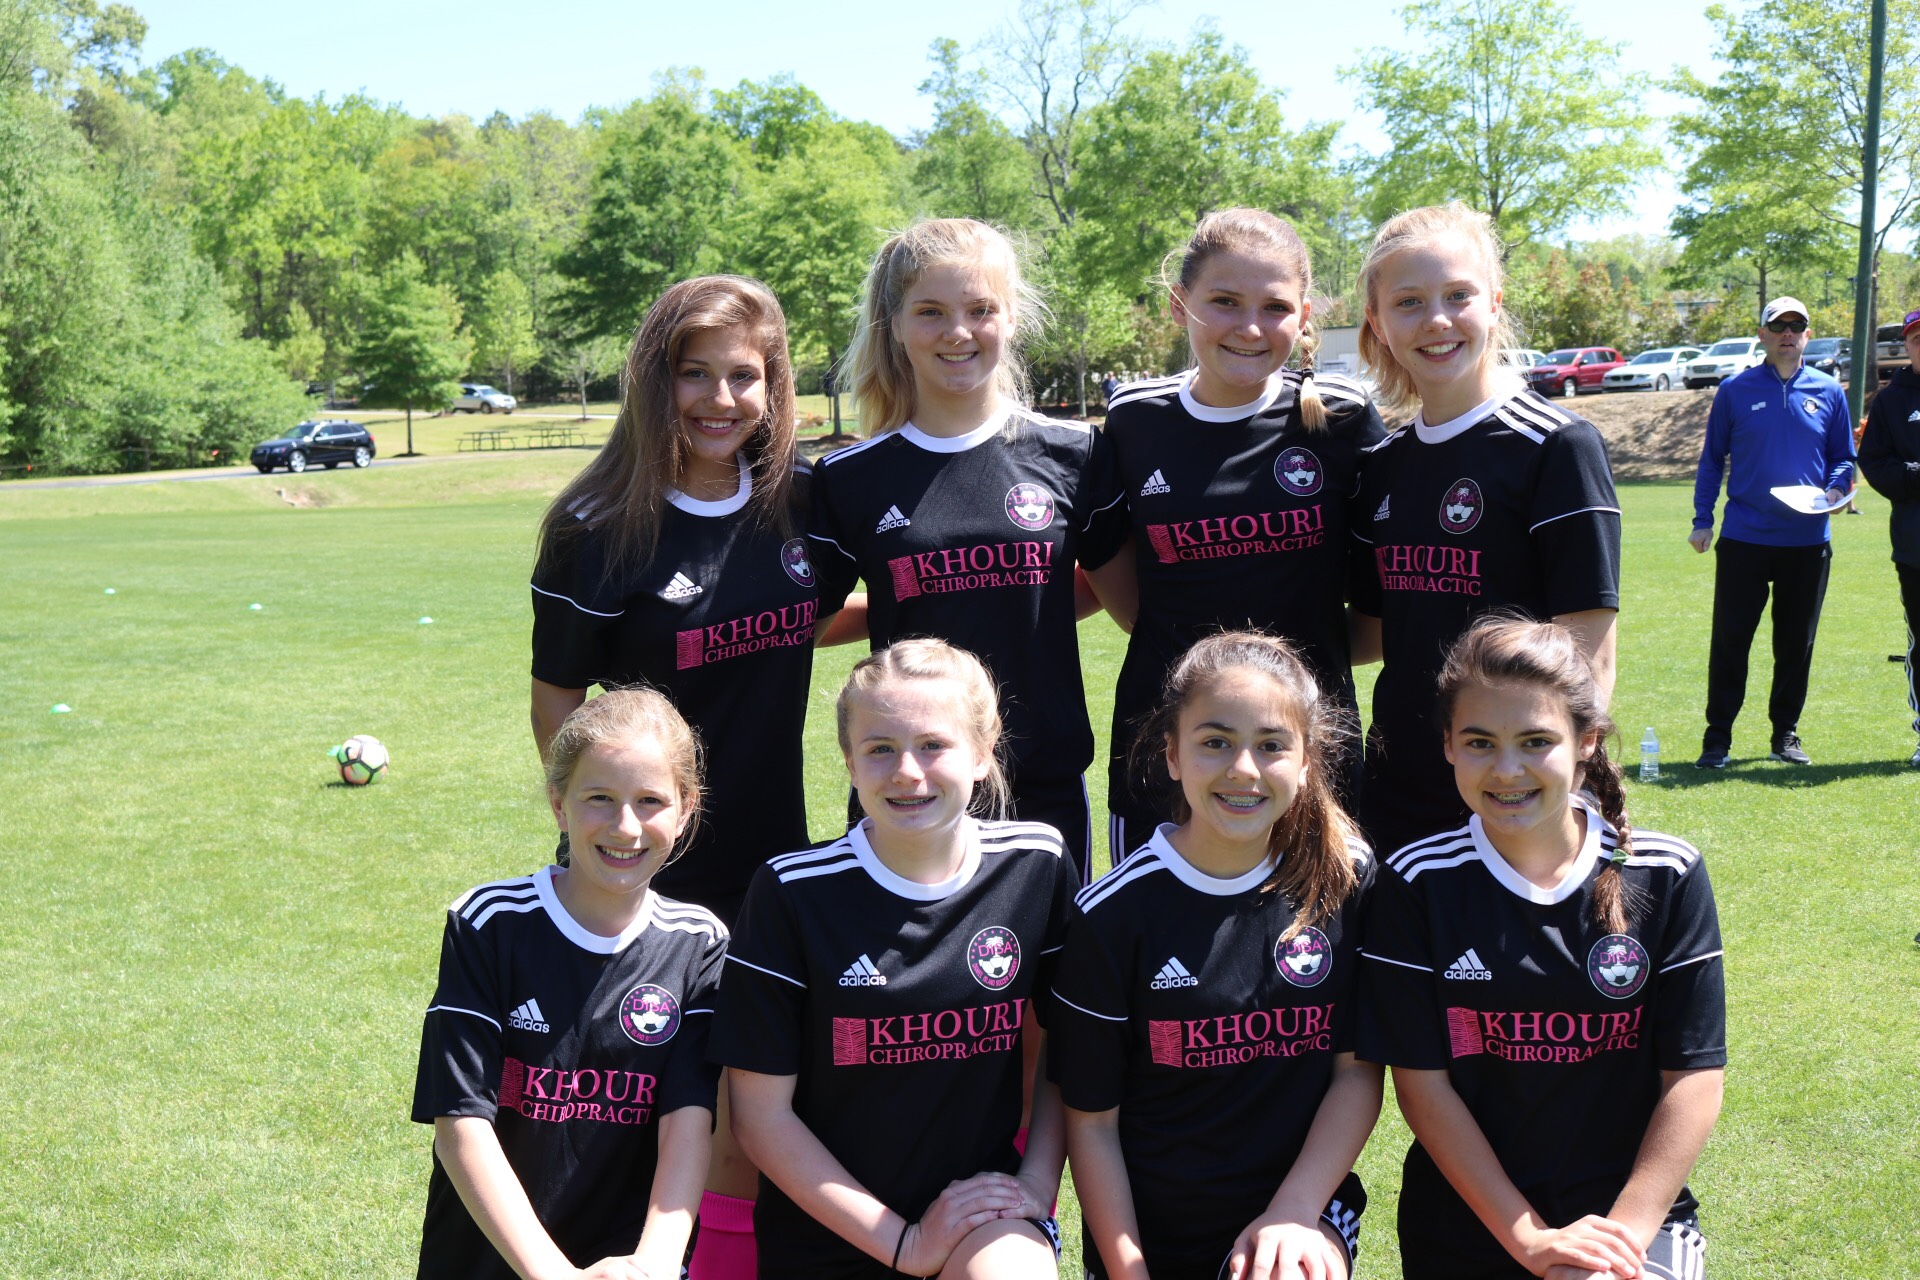 The Gators' midfielders and forwards (left to right - top row): Stephanie Kirk, Grace Herman, Jennifer Szlosek and Claire Esse. Bottom row: Carly Becvinovski, Emily Scarth, Avery Darr and Makayla Brunetti.